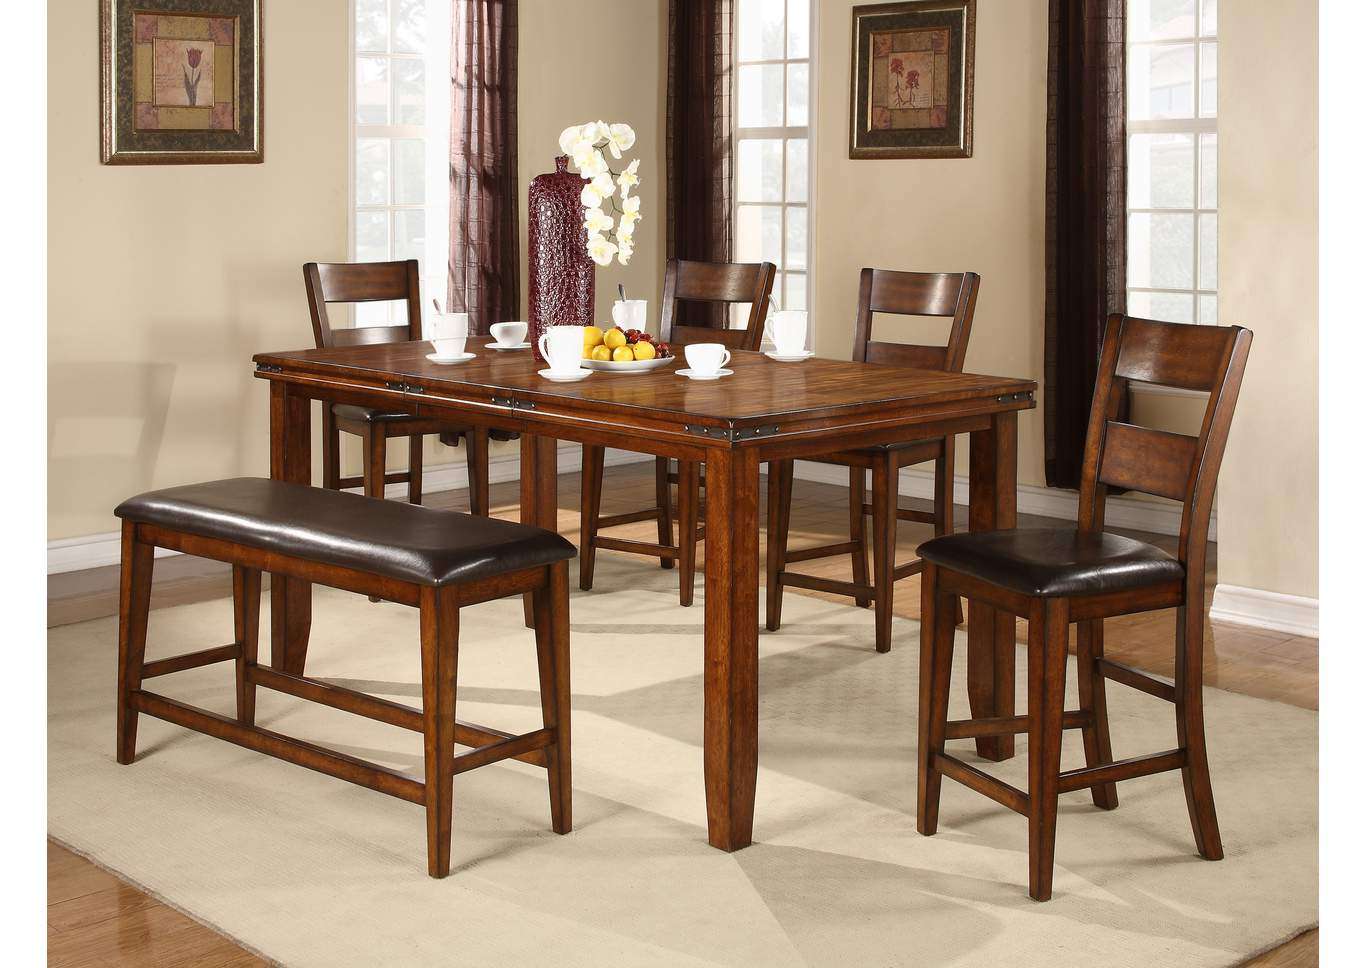 Counter Height Dining Tables: Compass Furniture Figaro Extension Counter Height Dining